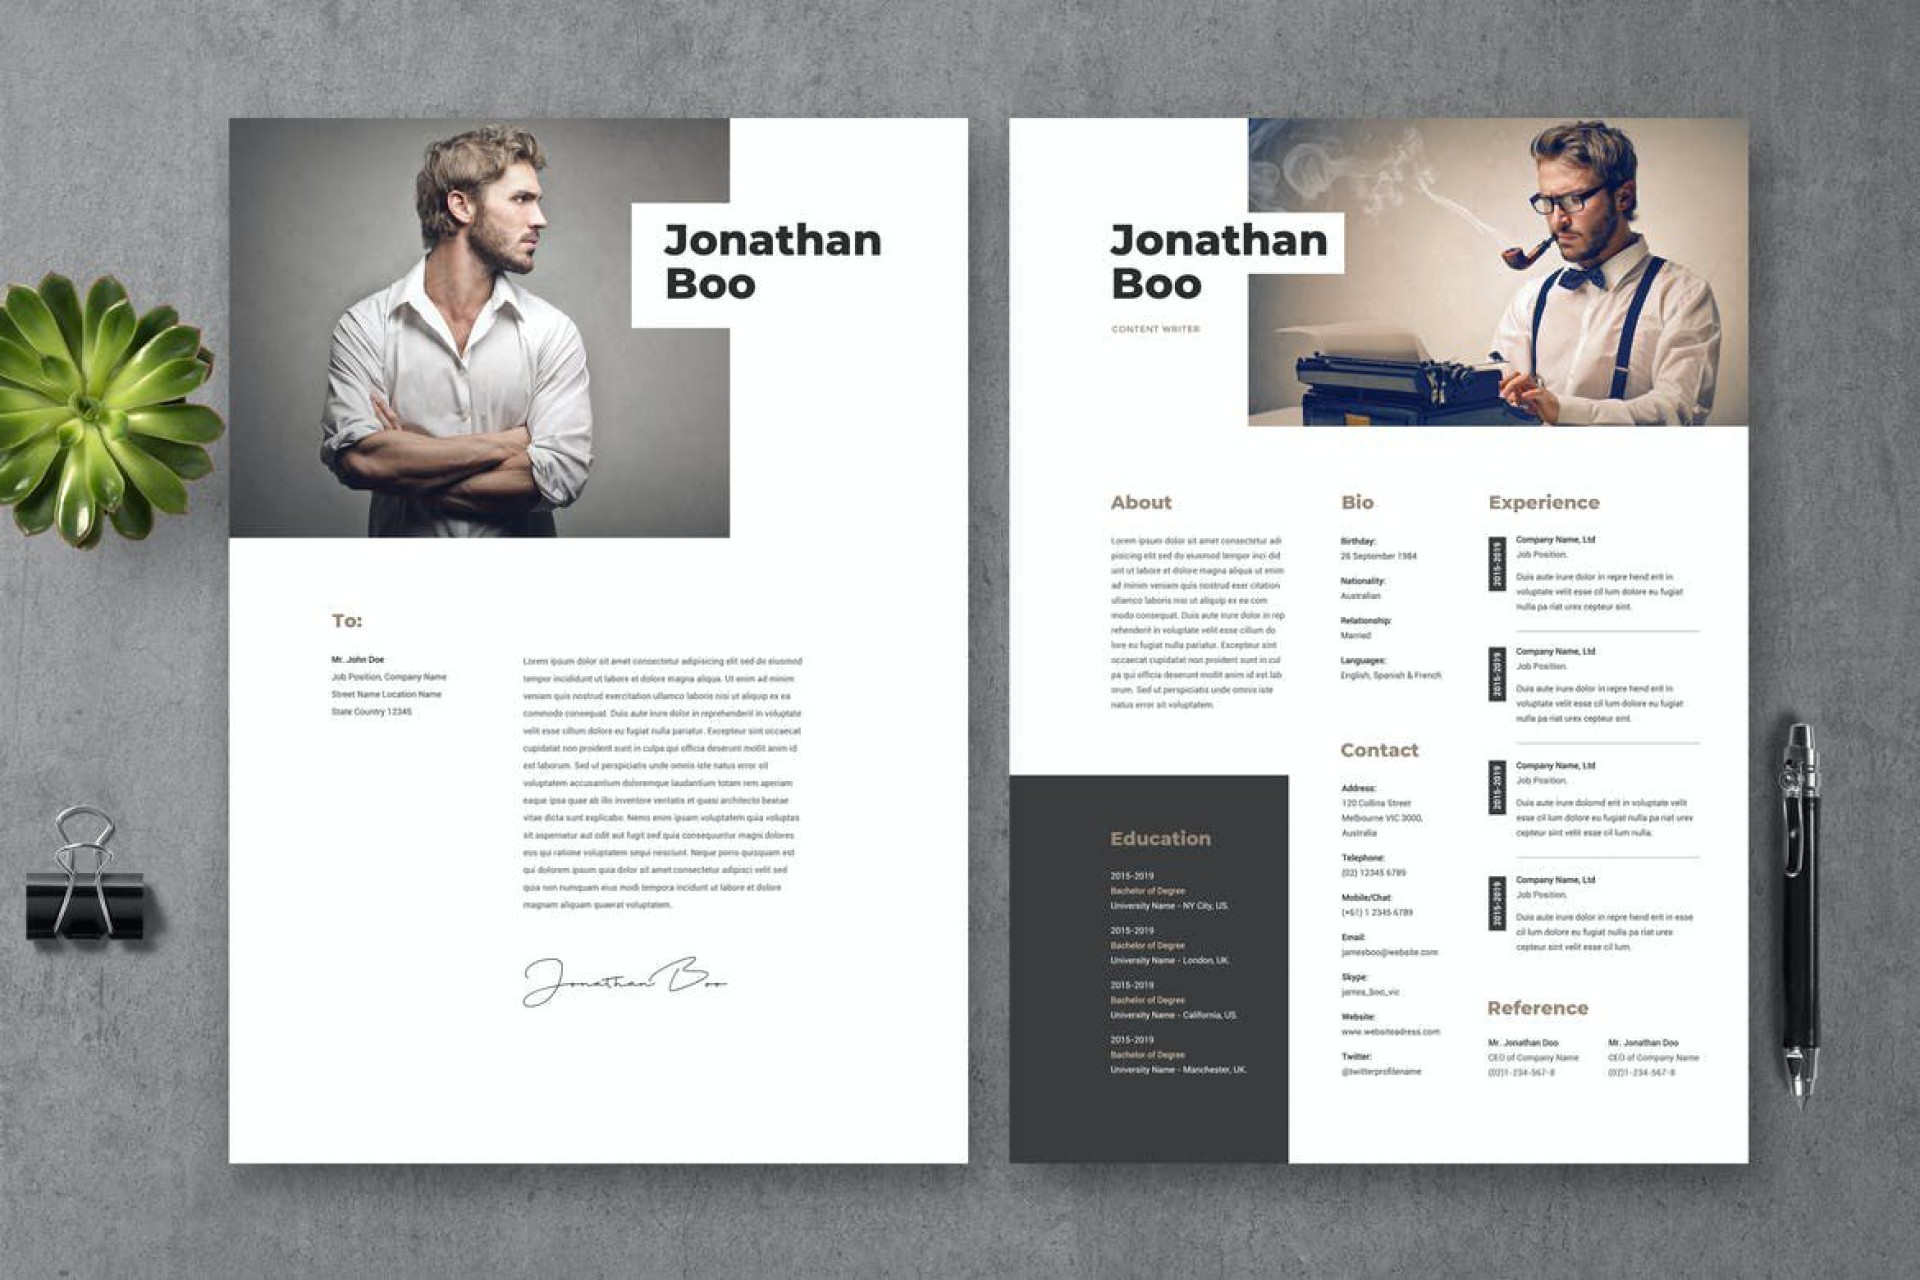 006 Exceptional Photoshop Resume Template Free Download High Def  Creative Cv Psd1920